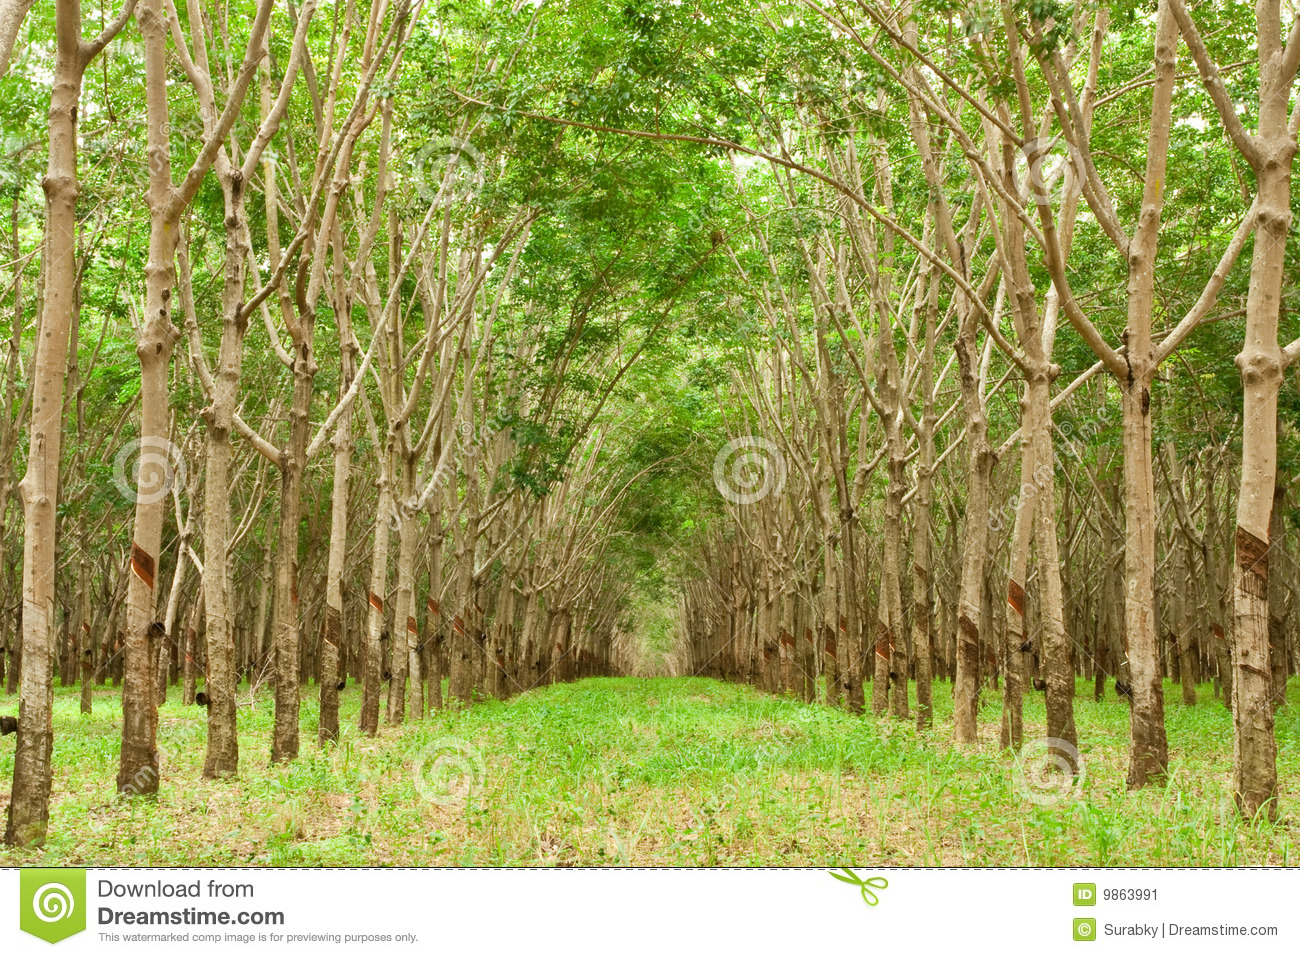 Para Rubber Tree Gerdenning In Thailand Stock Image - Image: 9863991